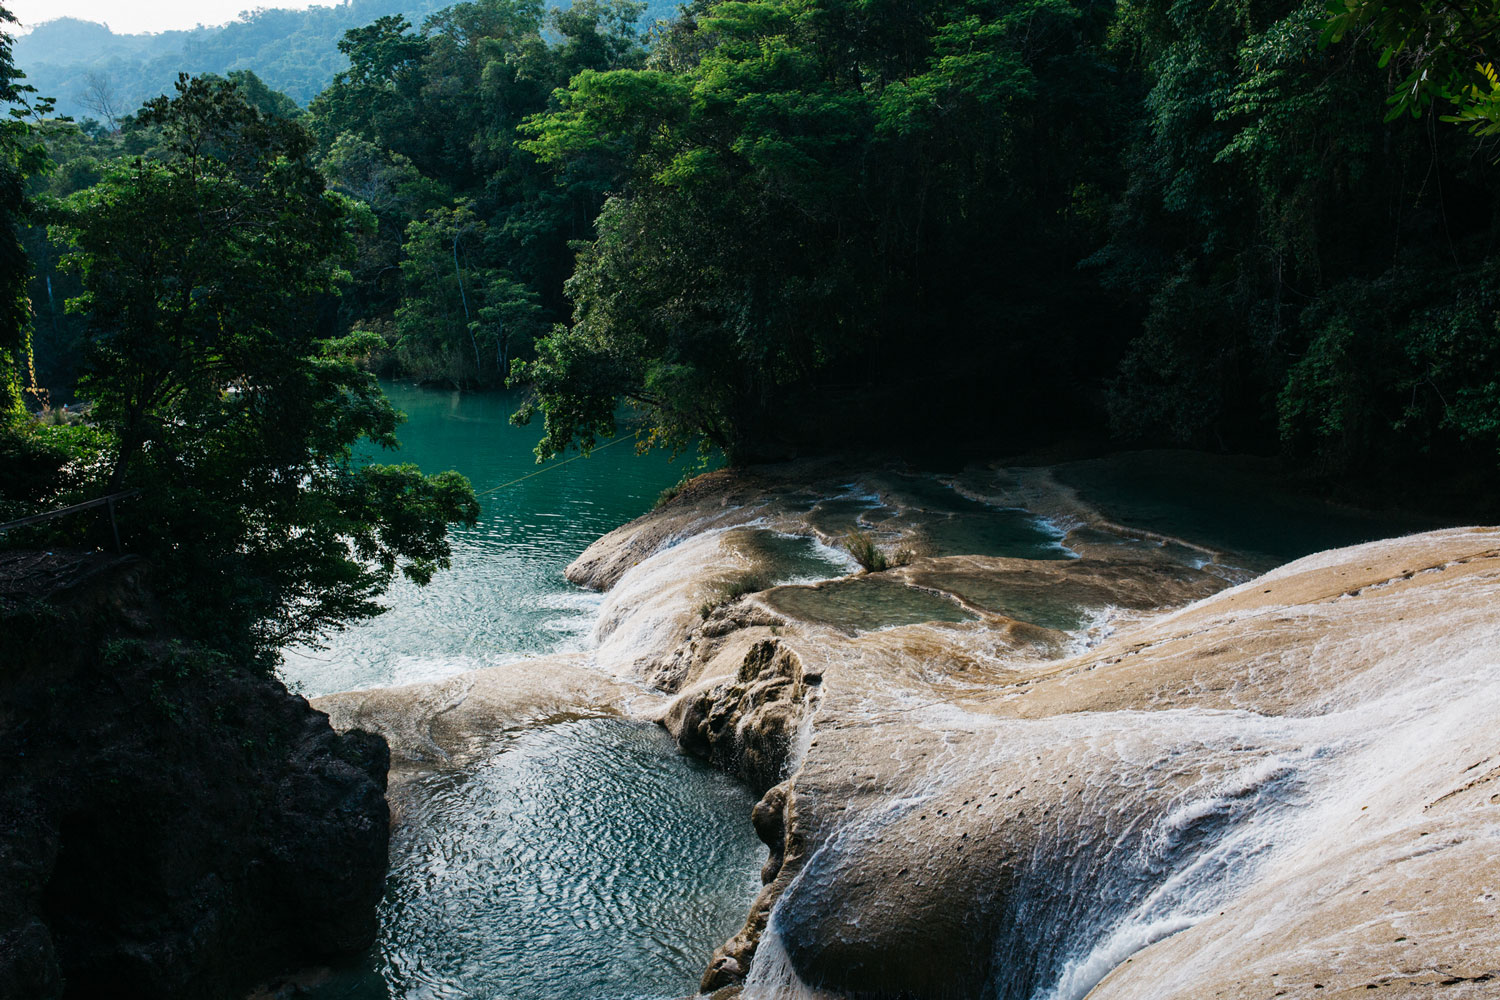 Hammocks_and_Ruins_Town_Villages_Chiapas_Lakes_Rivers_Jungles_Highlands_Agua_Azul_Waterfalls20 (long).jpg